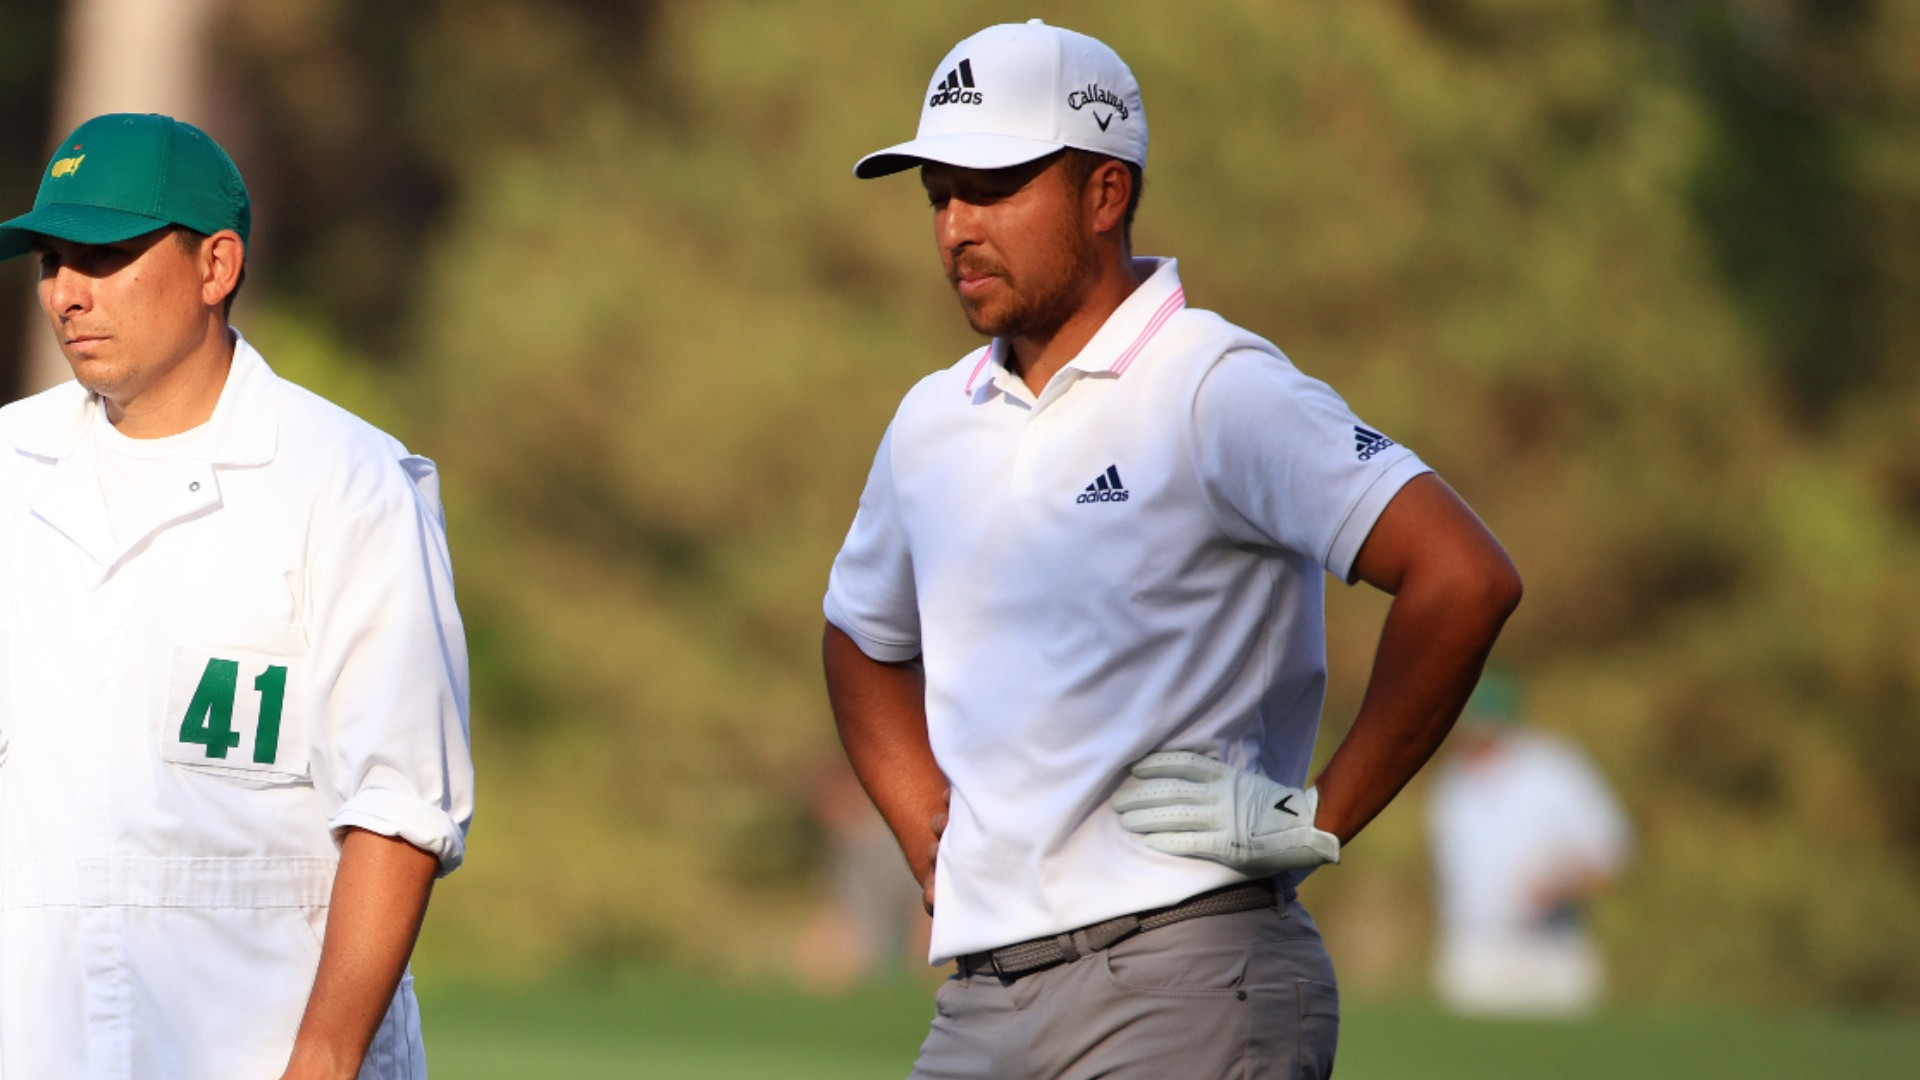 The Masters: No regrets for Schauffele after another close major call